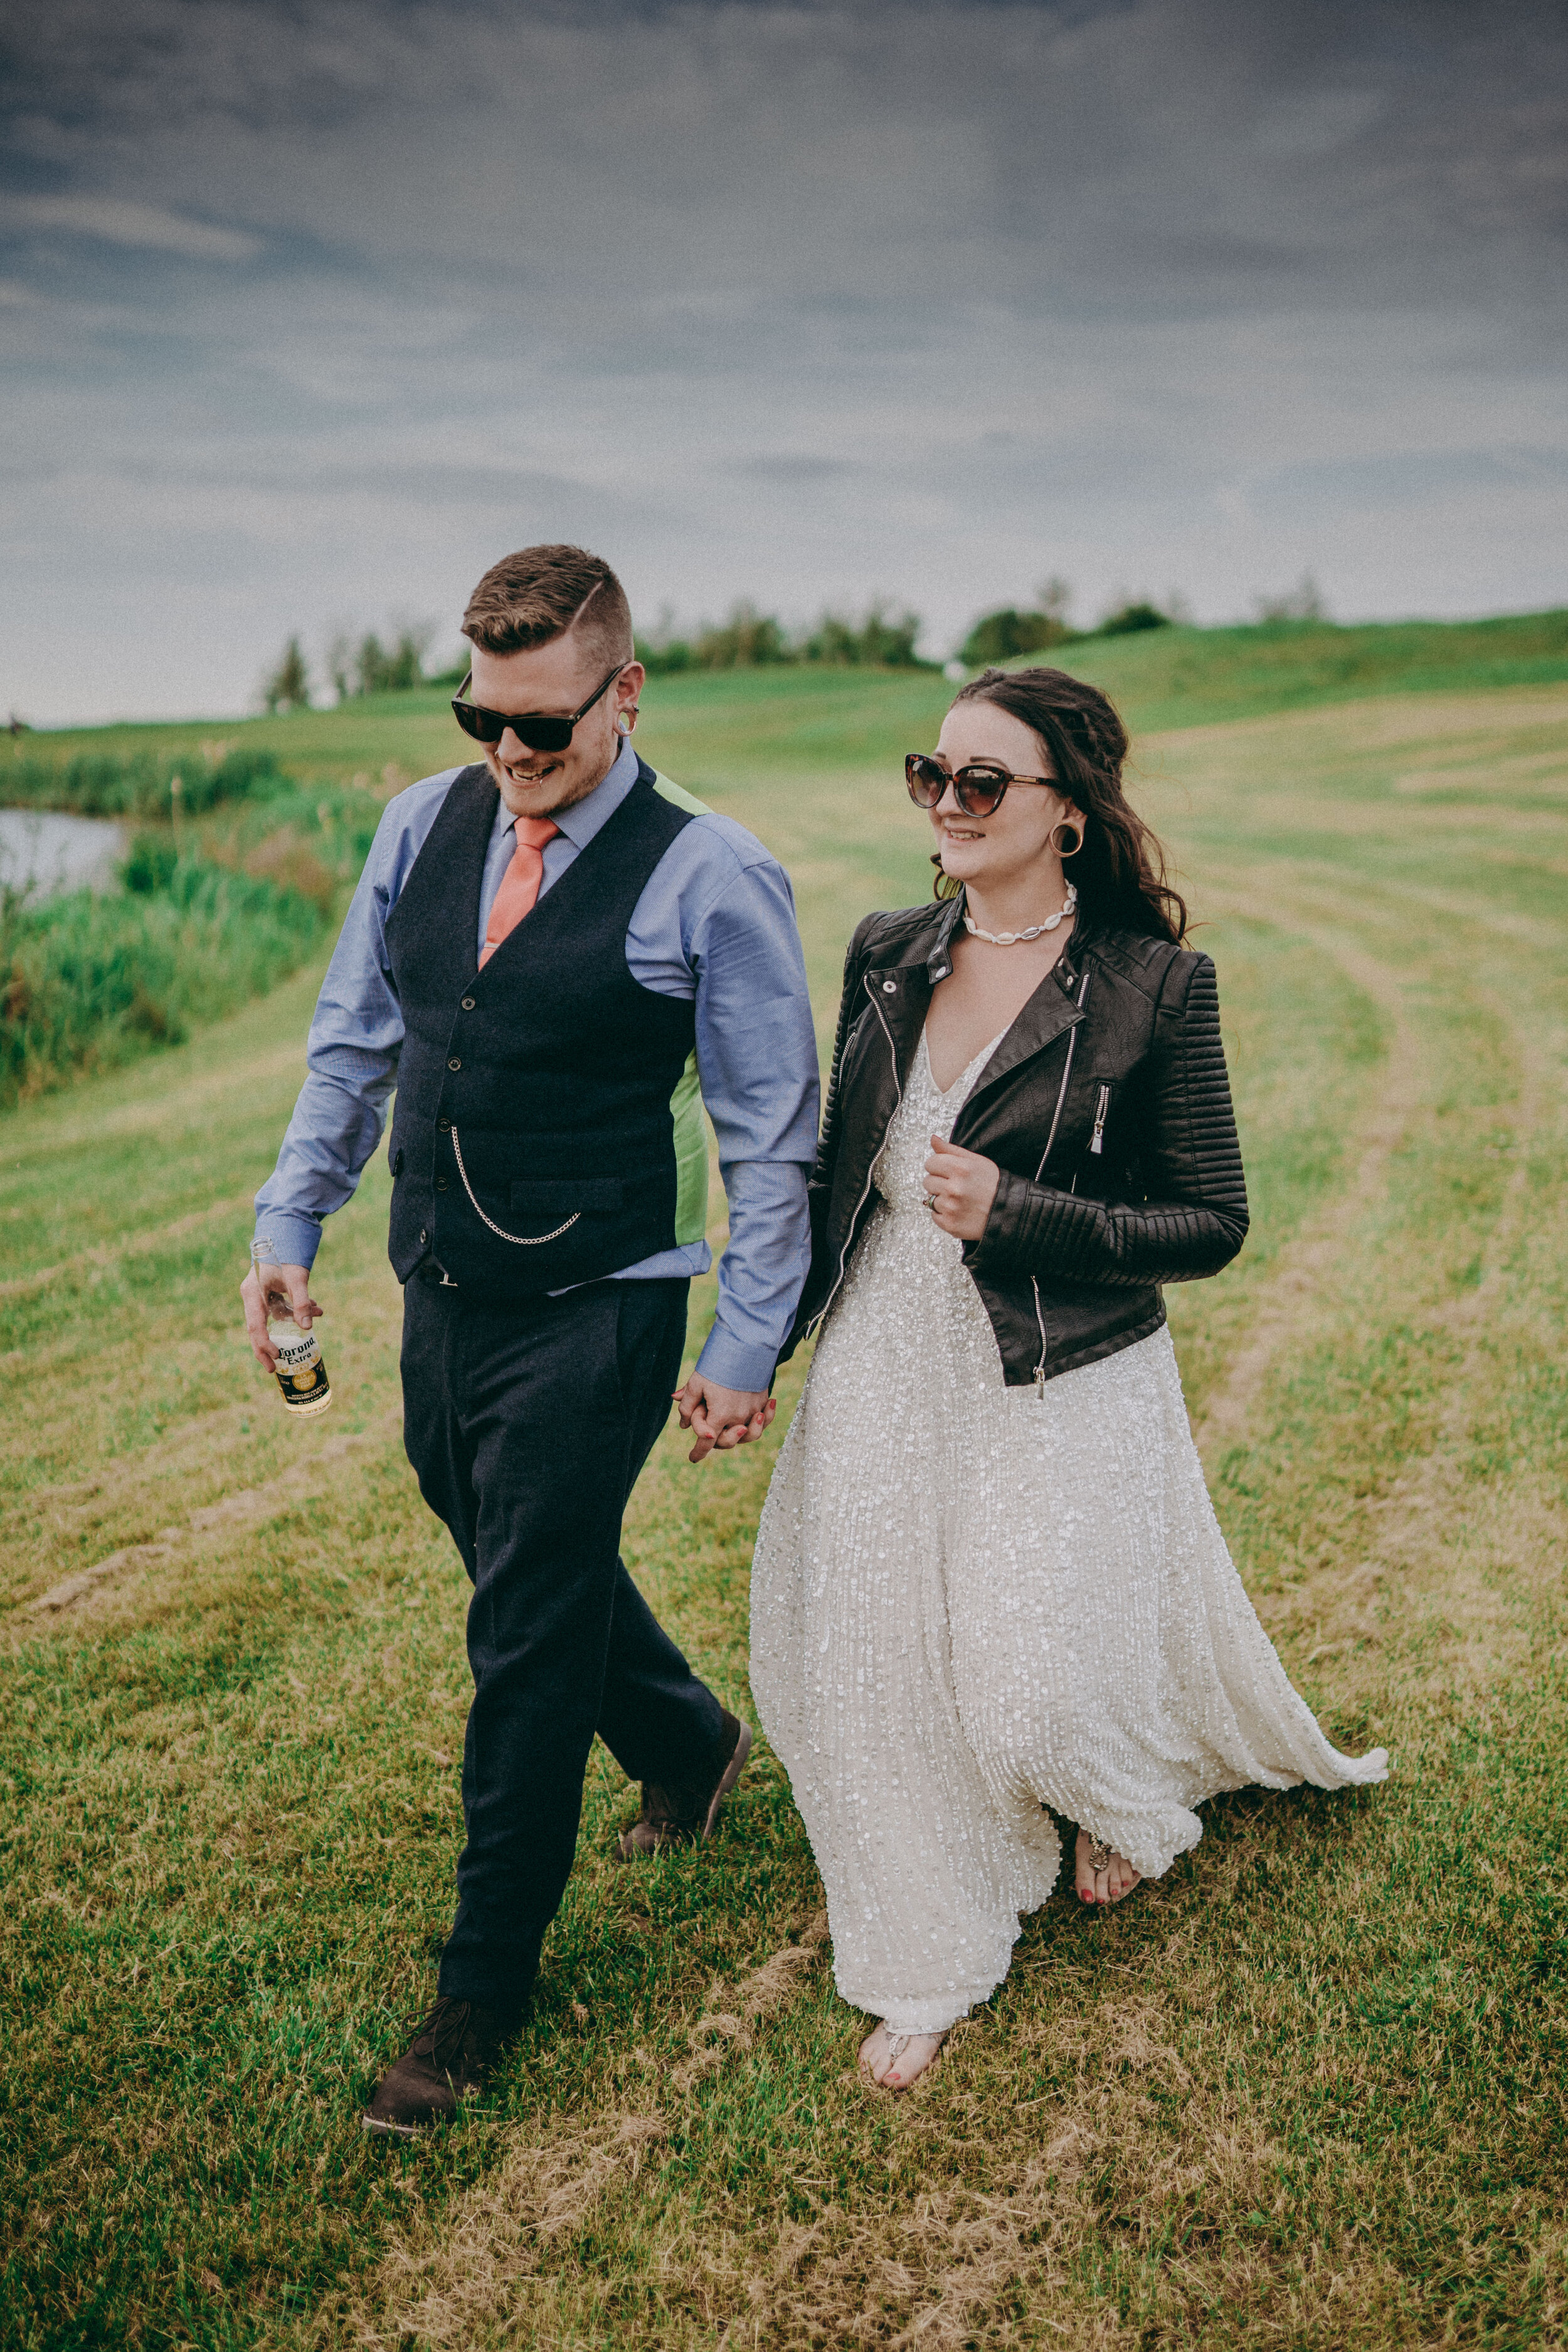 Hampshire wedding photography - Meche and Ross